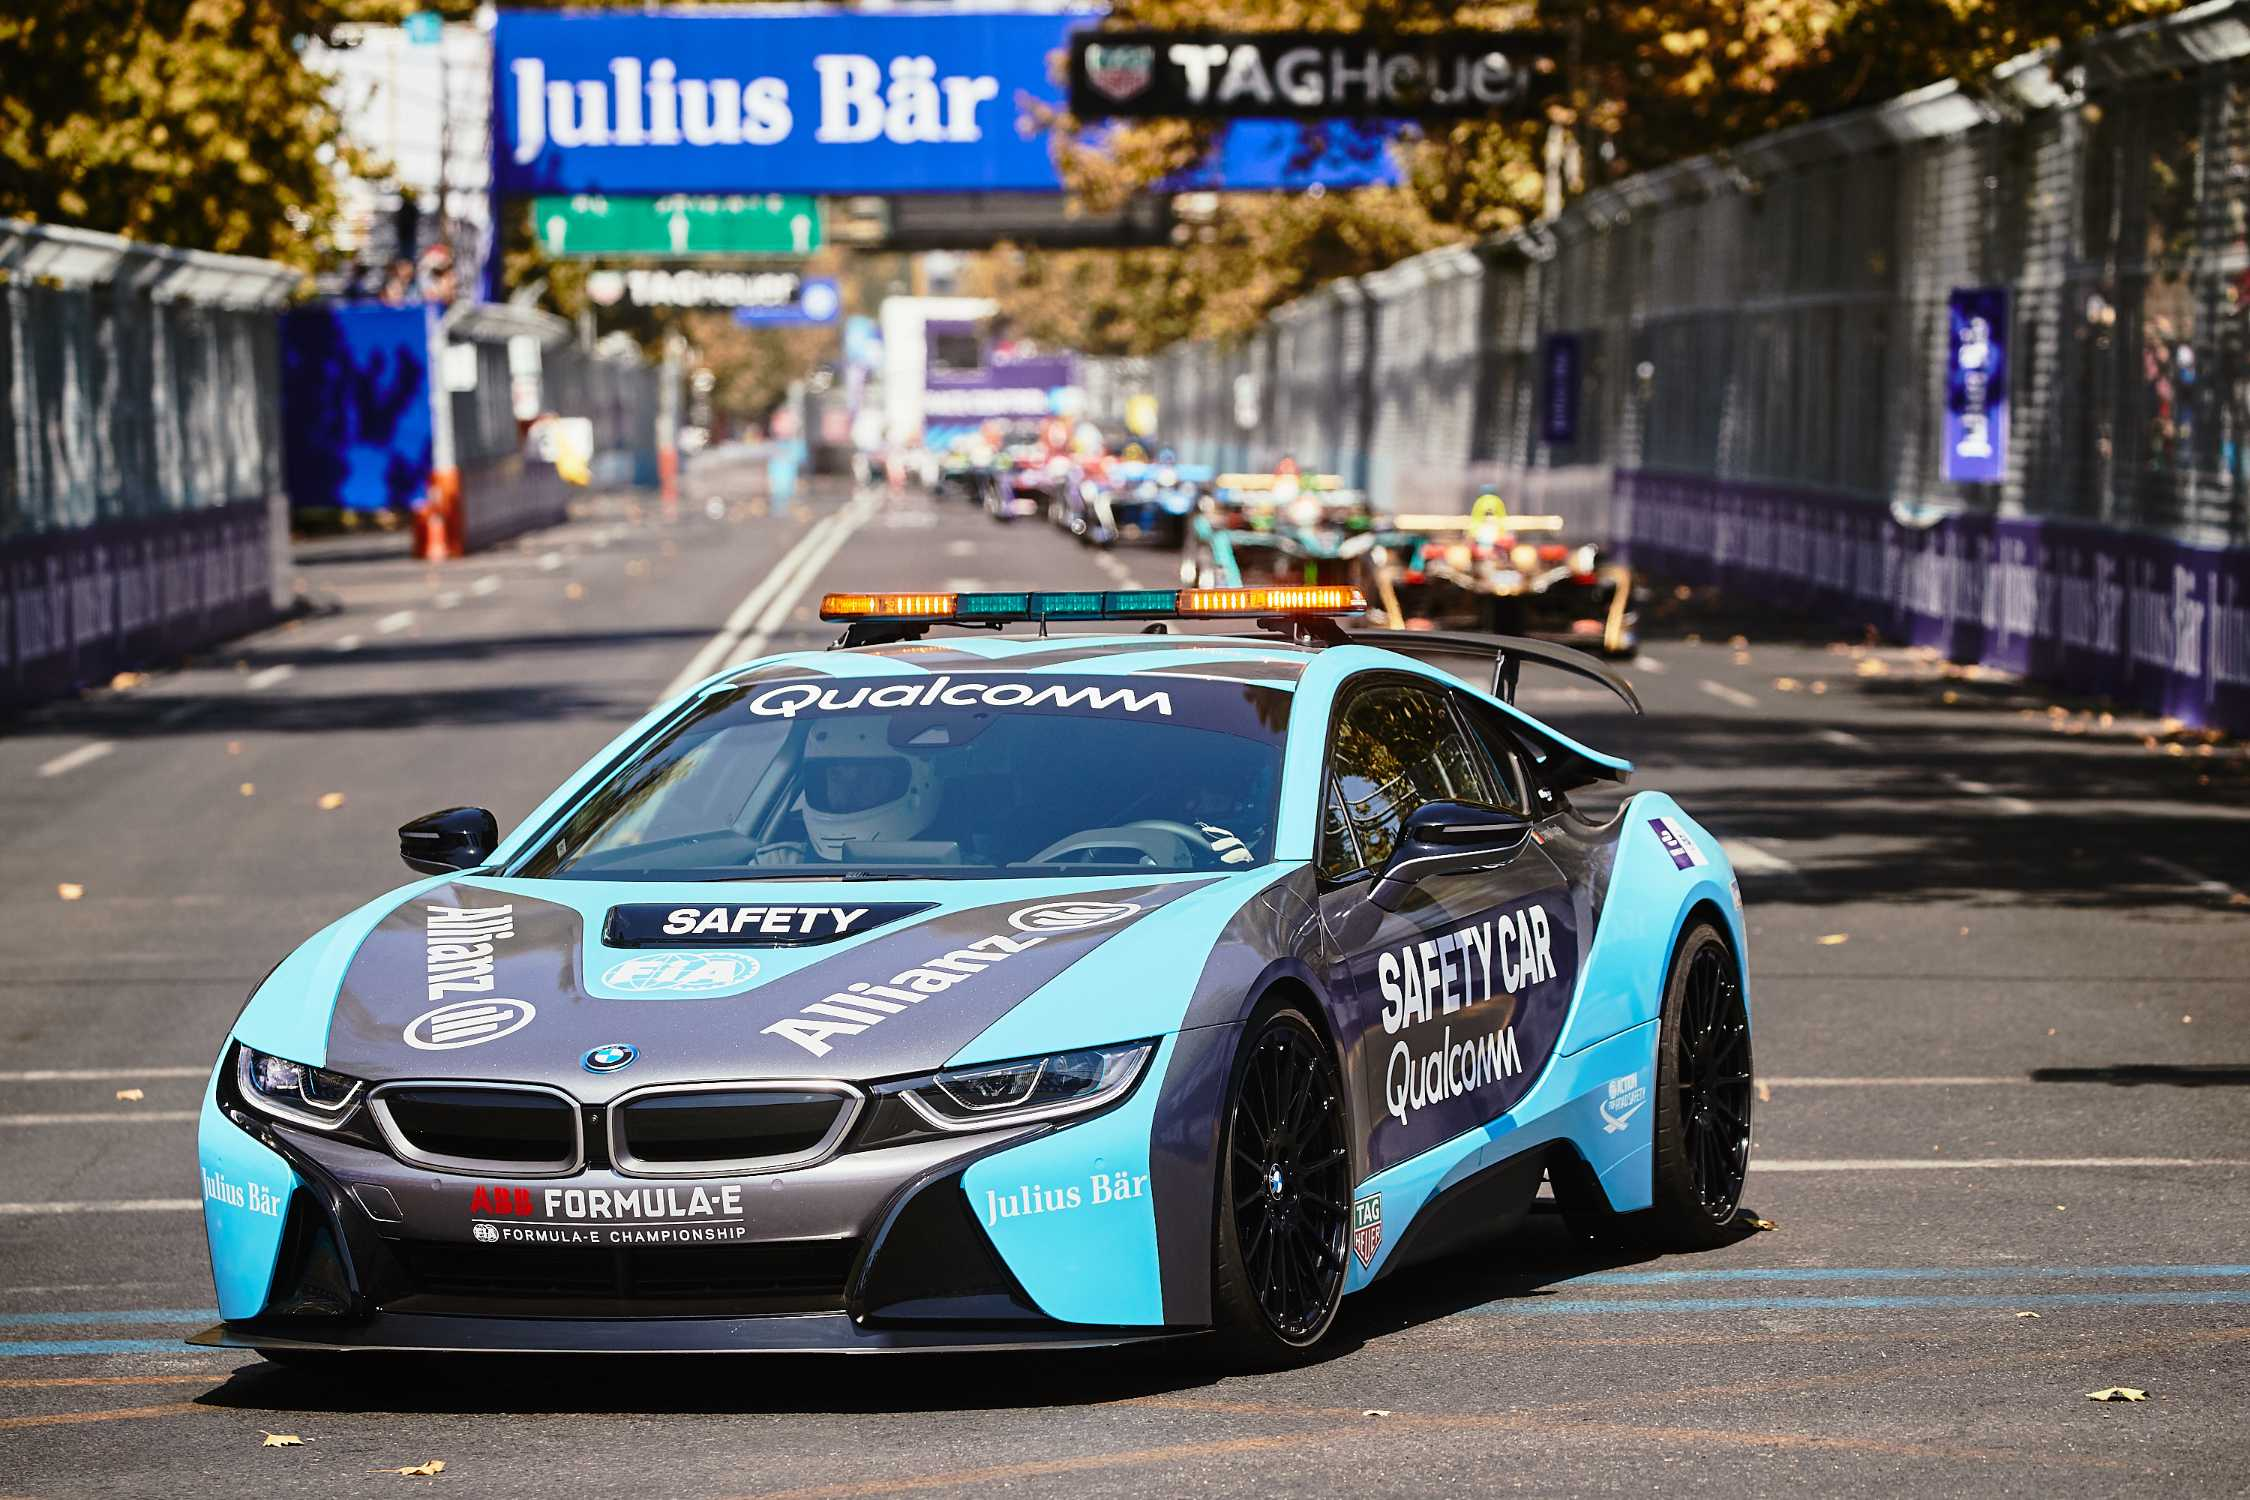 First Race Outing For The New Bmw I8 Coupe Qualcomm Safety Car